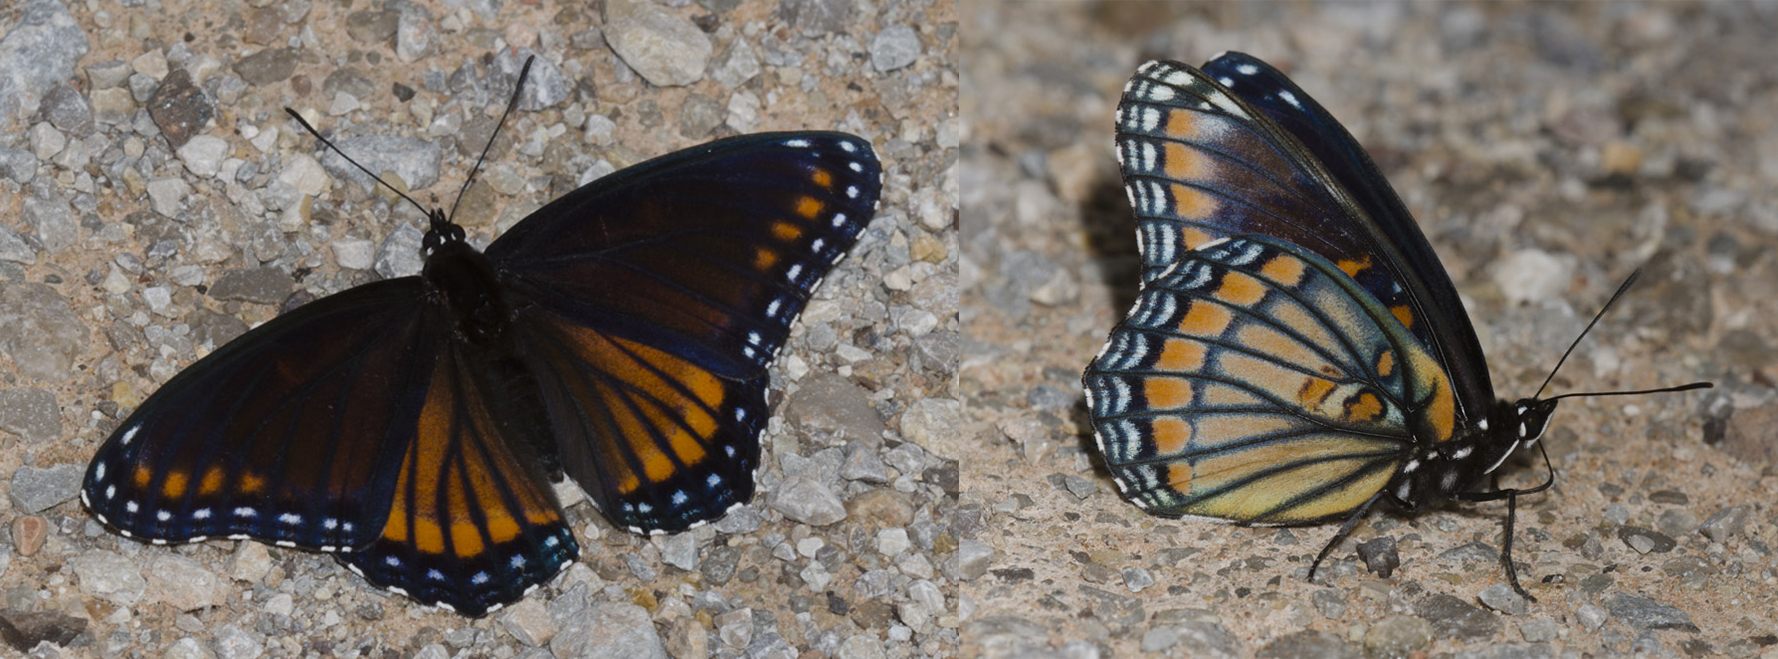 The hybrid butterfly, which embodies features of both the viceroy and the red-spotted purple, is shown in both a dorsal and ventral view.